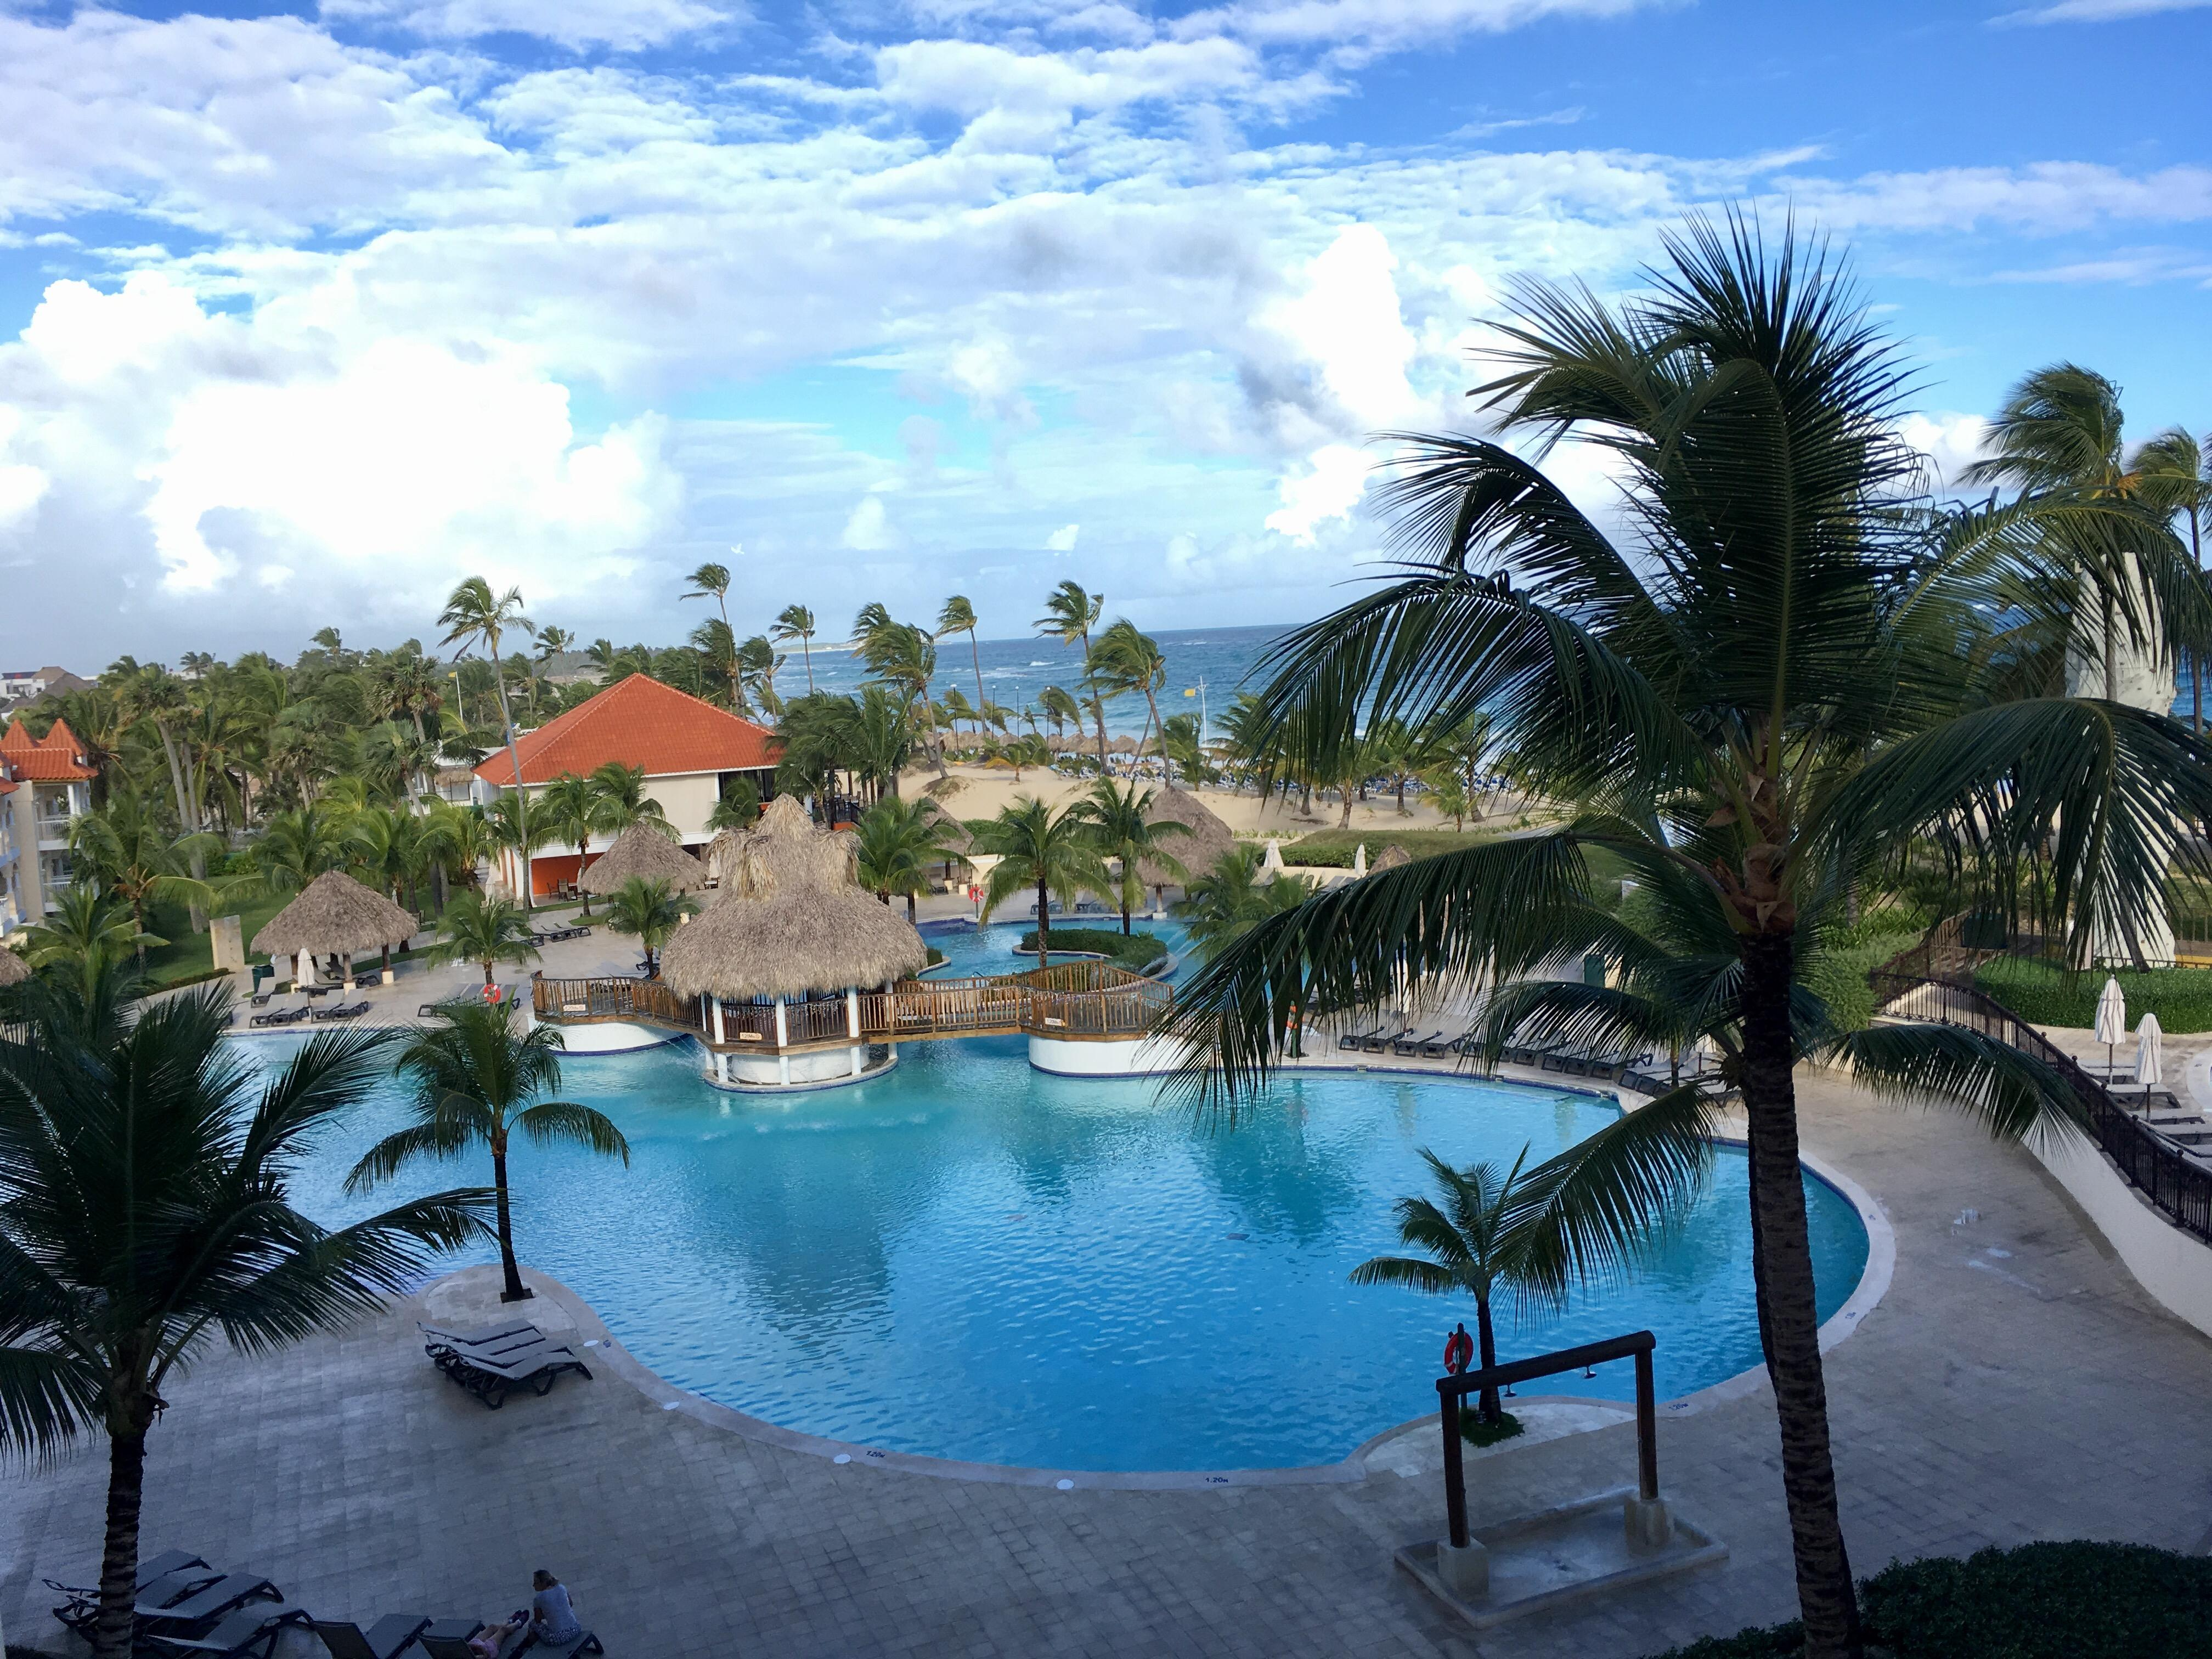 Occidental Caribe  All Inclusive Hotel Reviews  Expedia